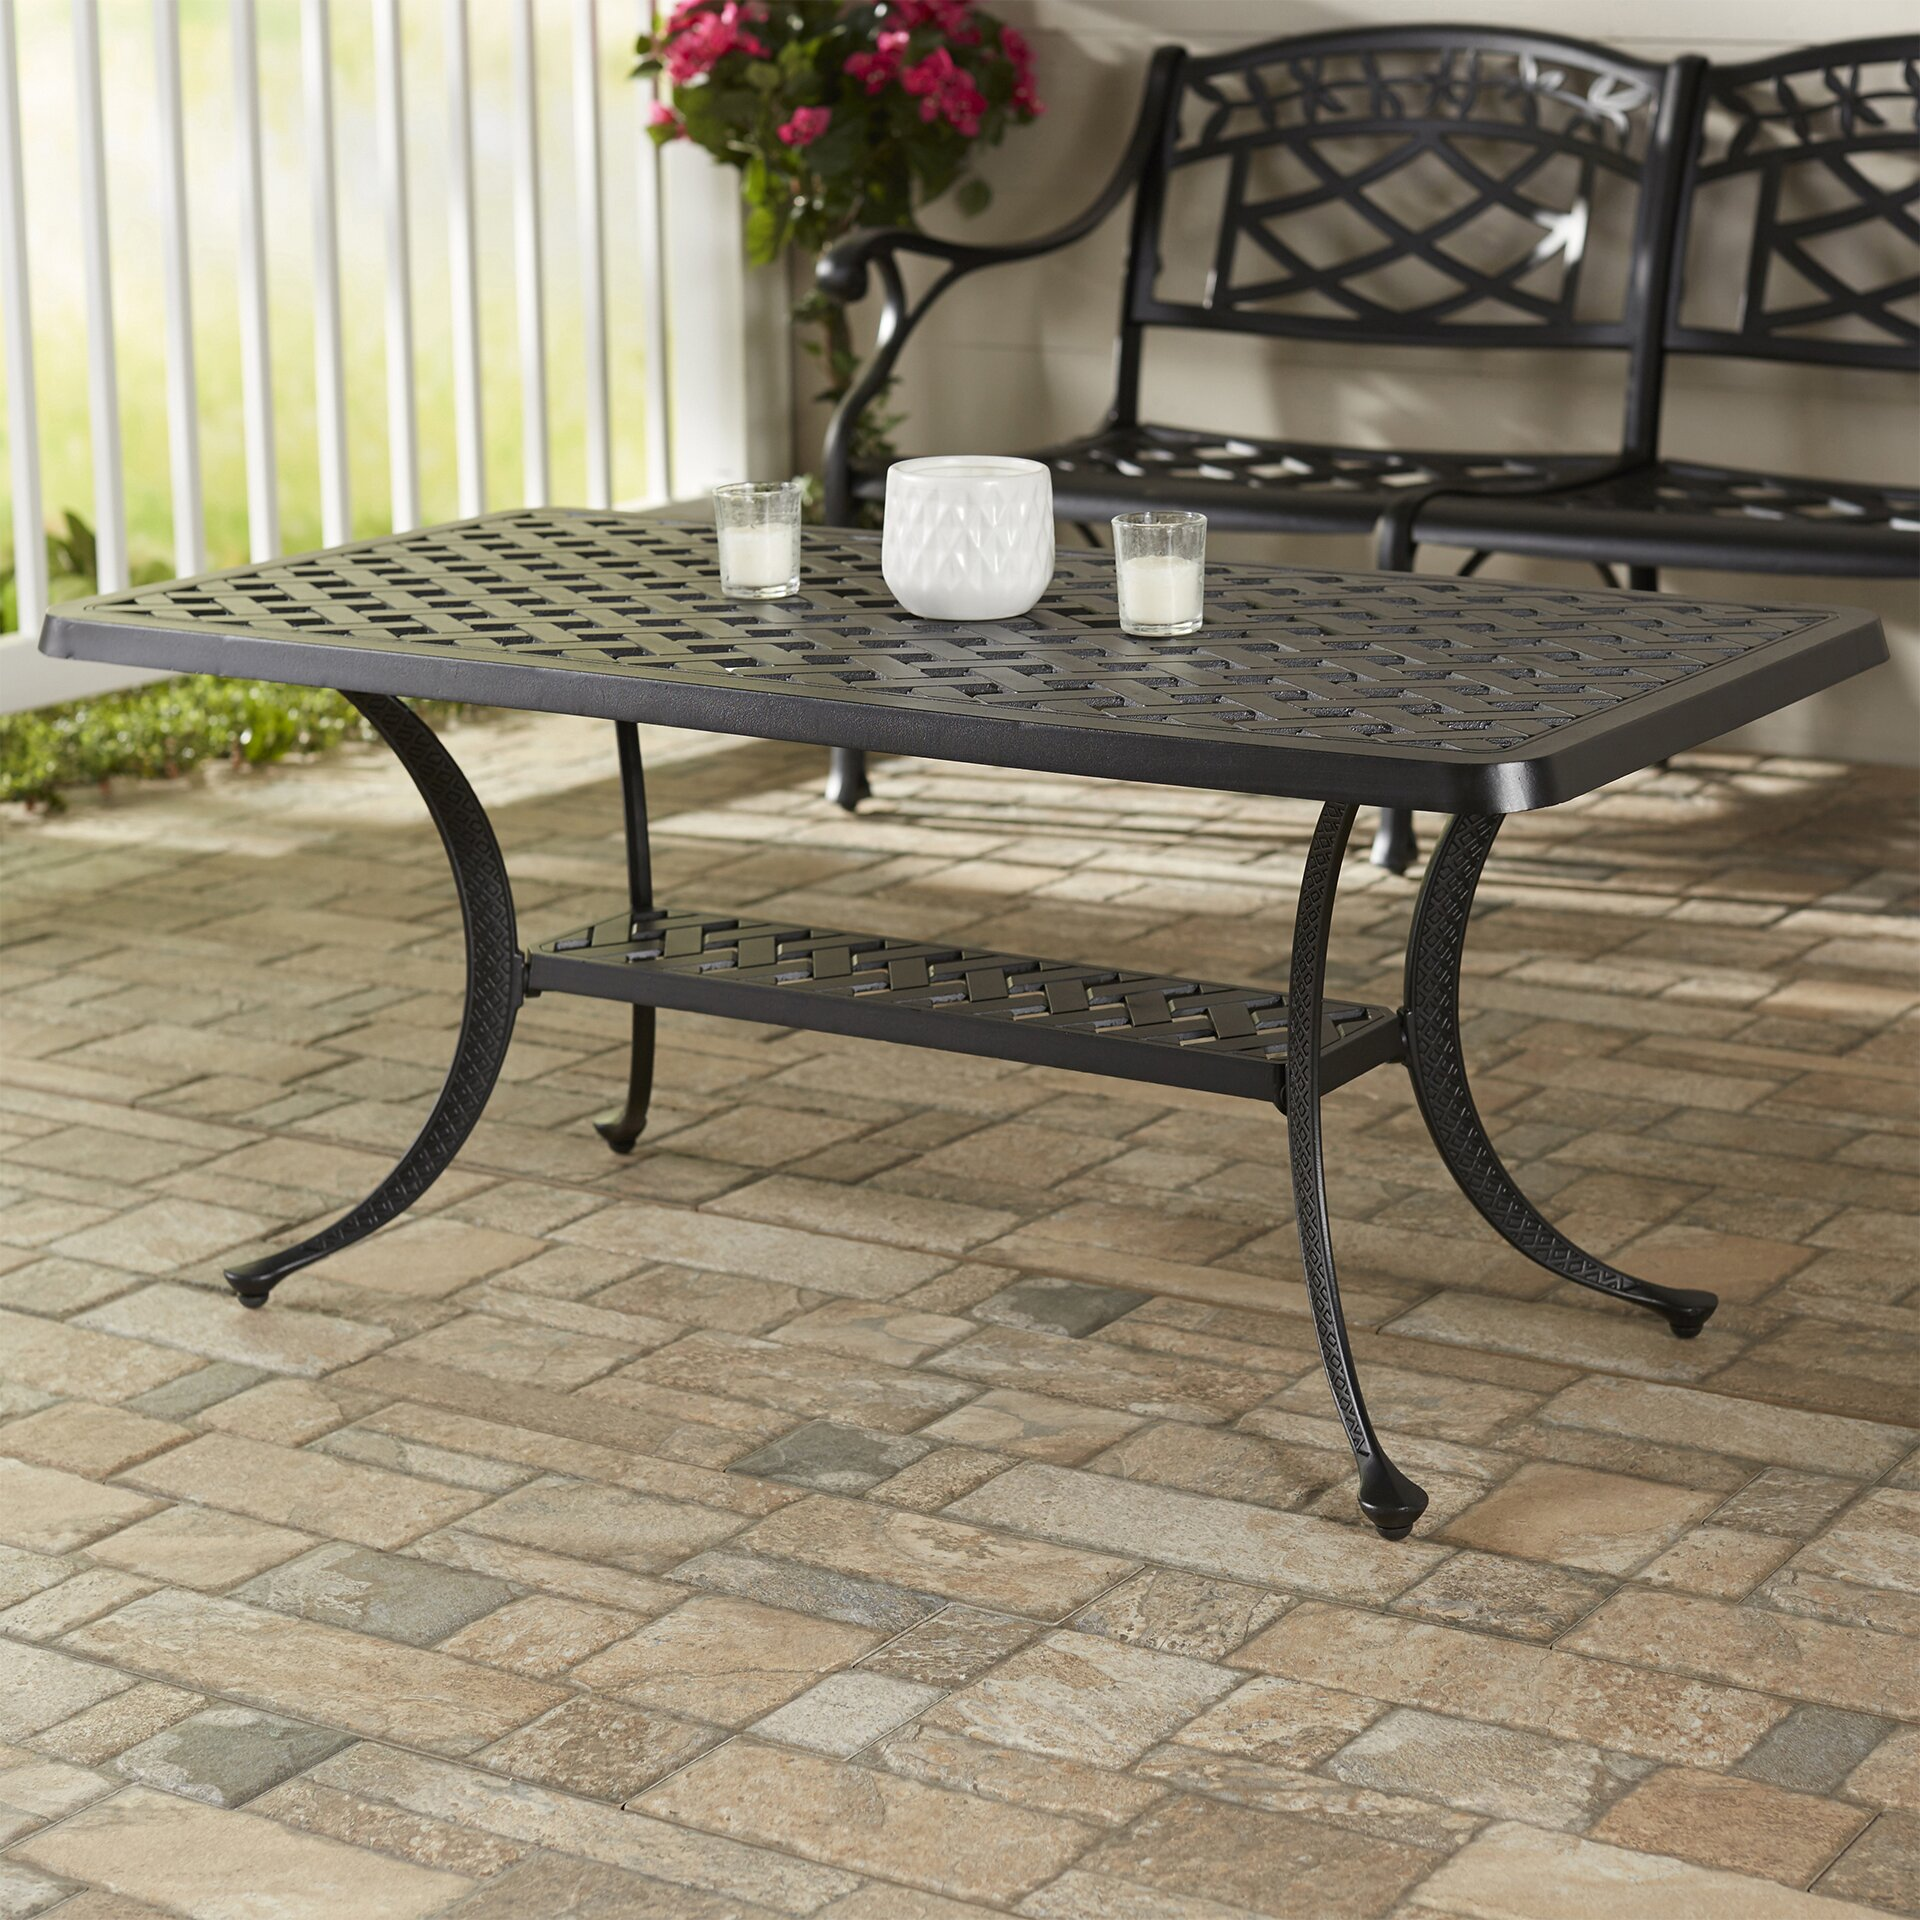 Aluminum Patio Coffee Table: Darby Home Co Lomax Cast Aluminum Rectangular Coffee Table